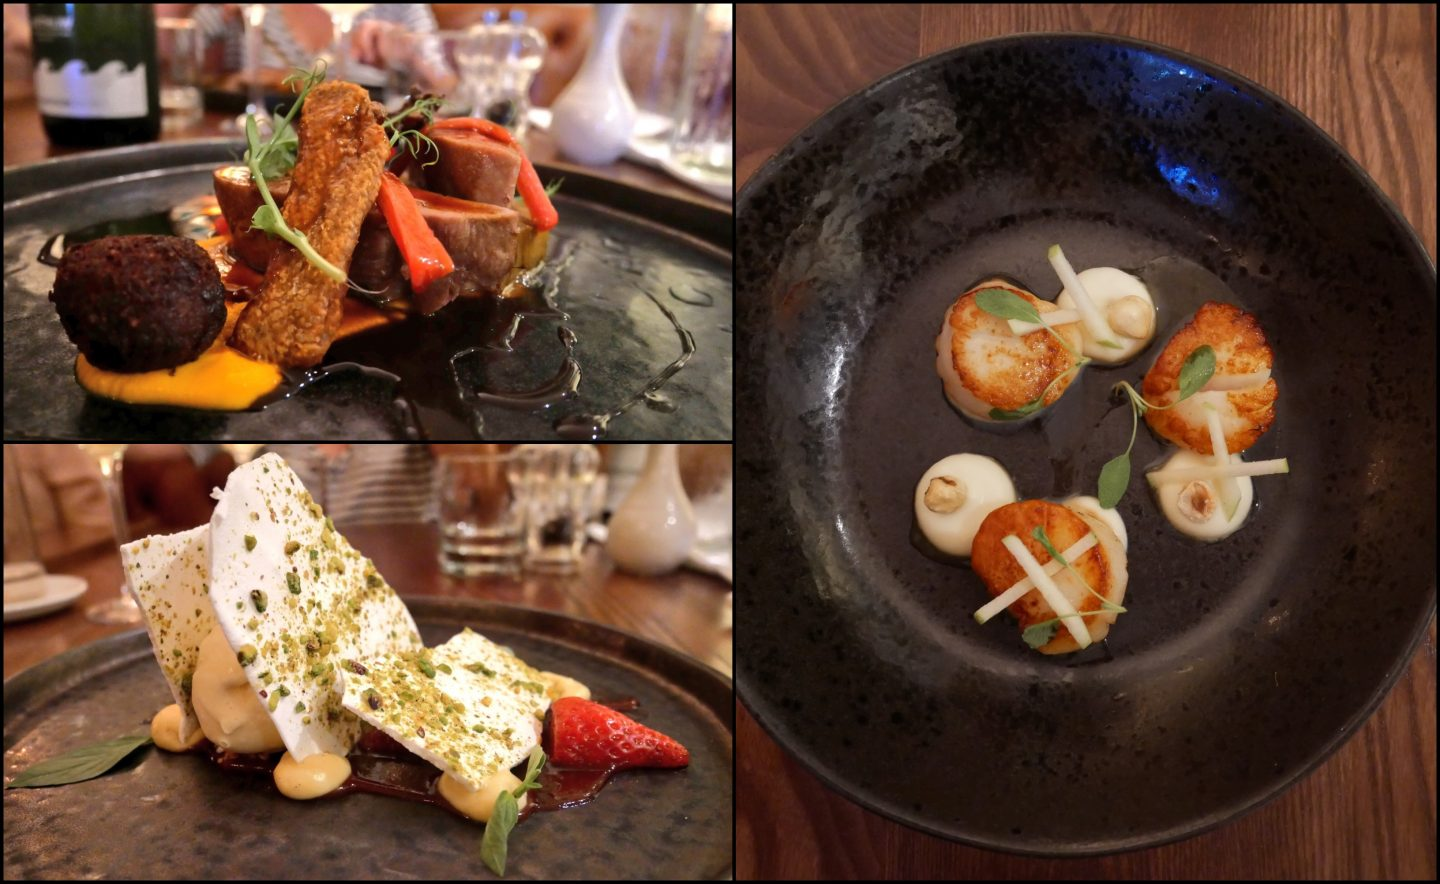 A collage of my starter, main and dessert at Llanerch Vineyard